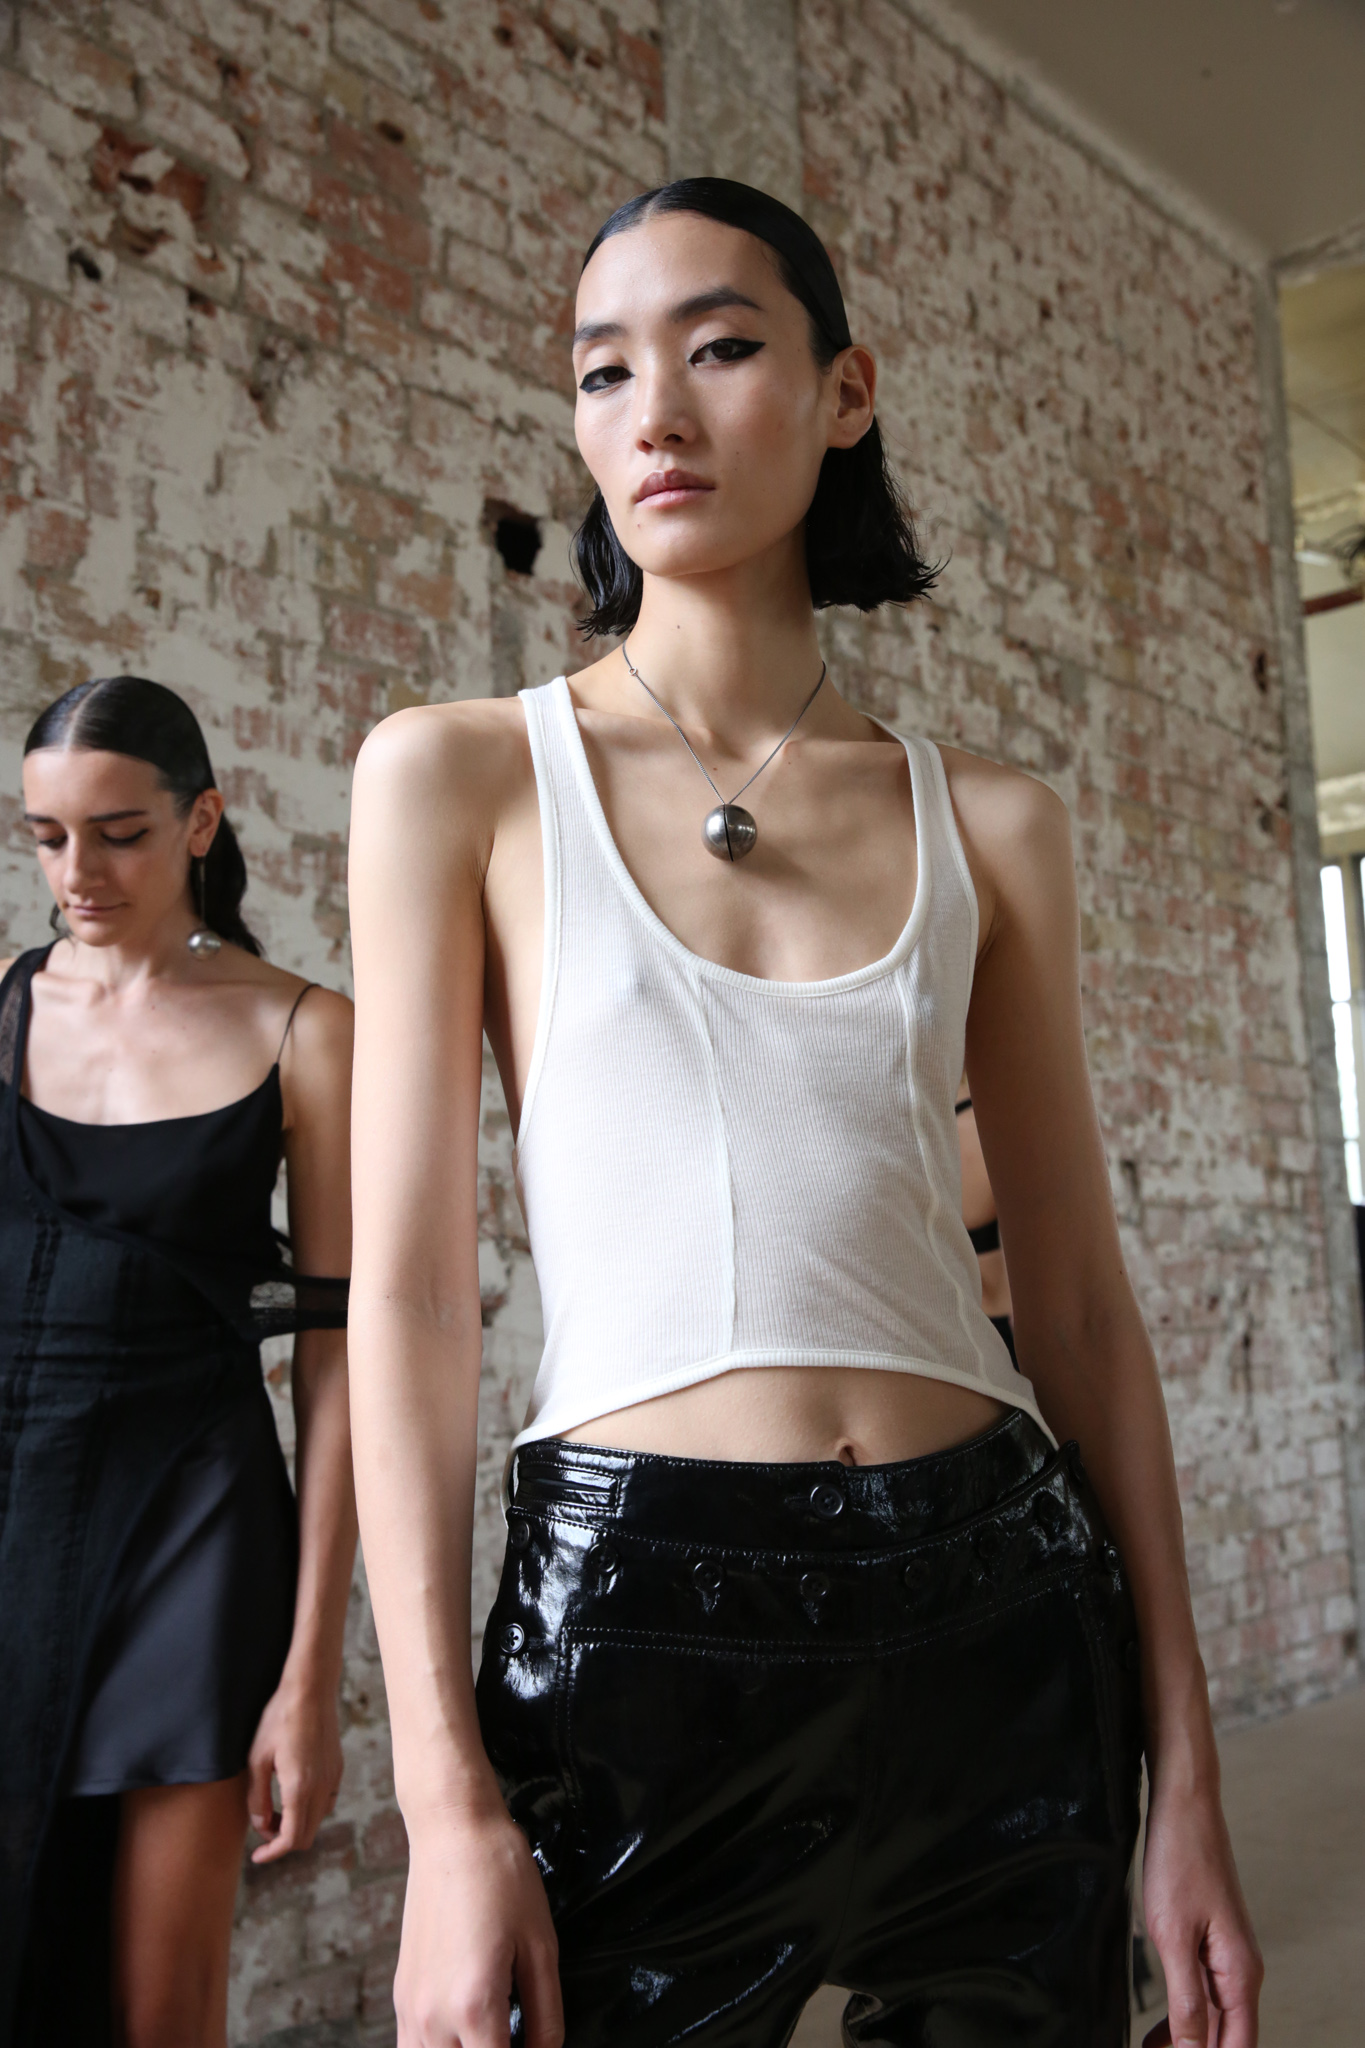 Backstage at Ann Demeulemeester RTW Spring 2020